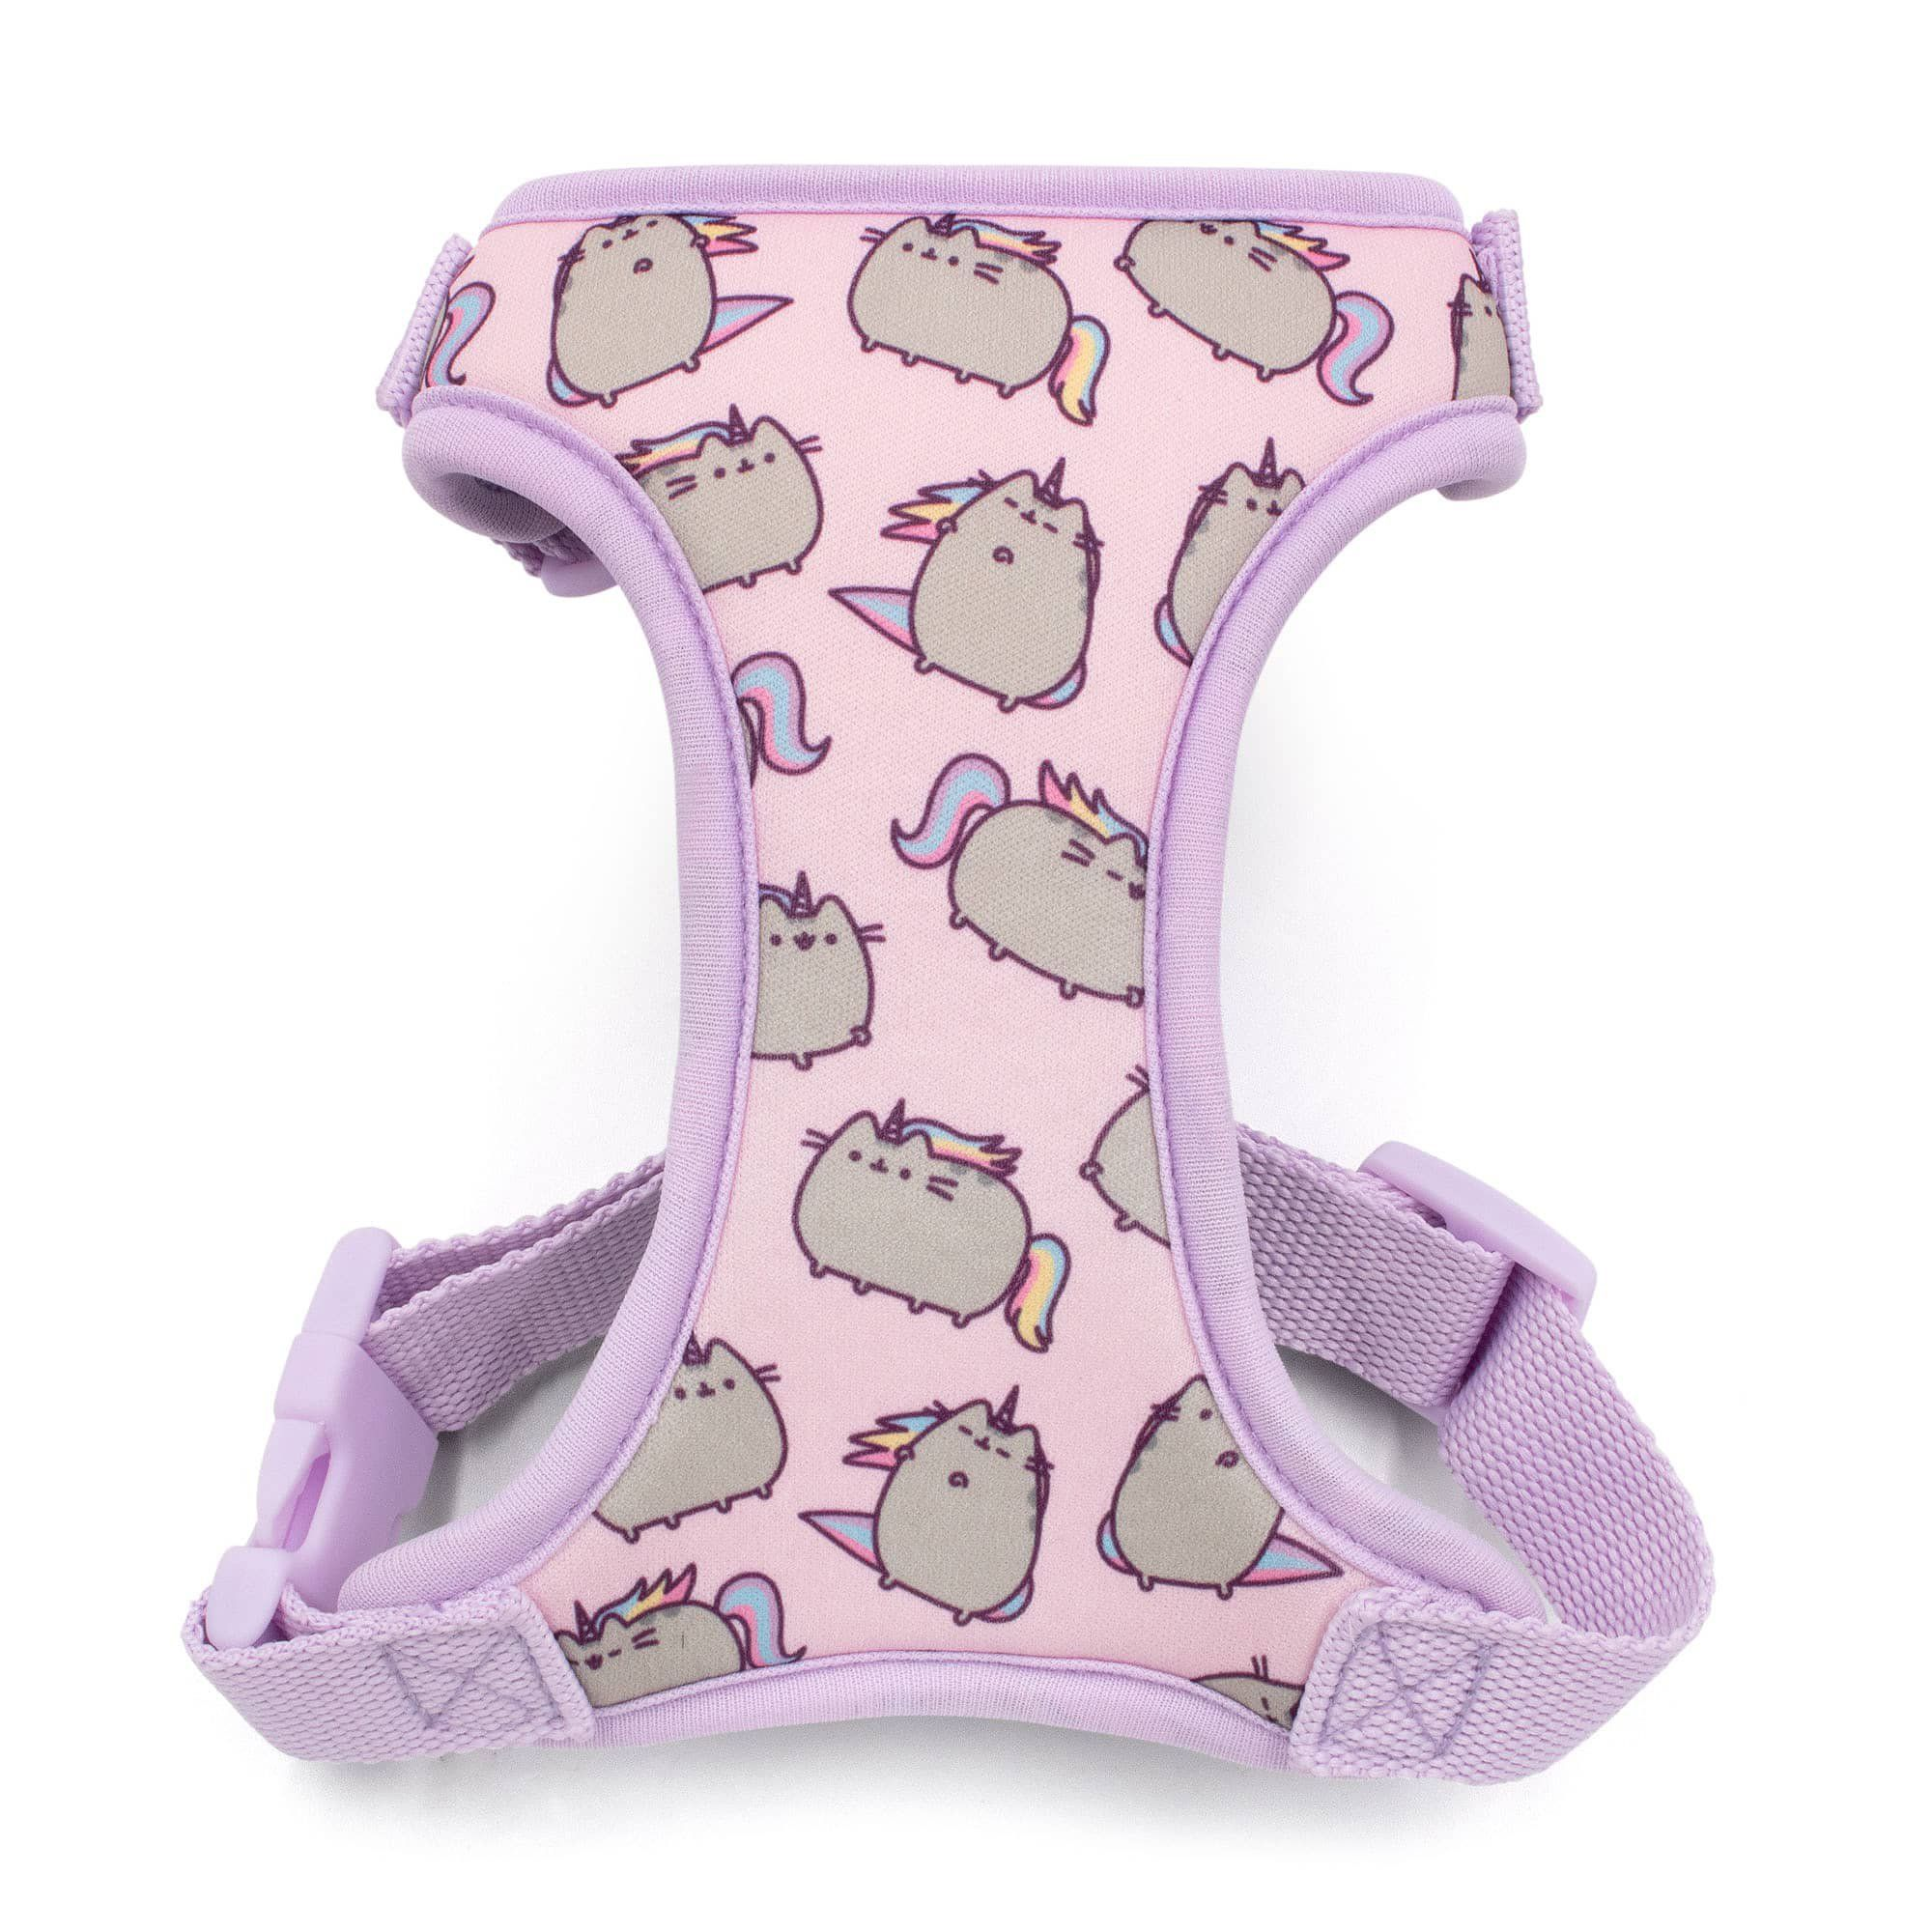 Pusheen Pink Adjustable Cat Harness With Leash Medium Petco Cat Harness Pink Pusheen Pusheen